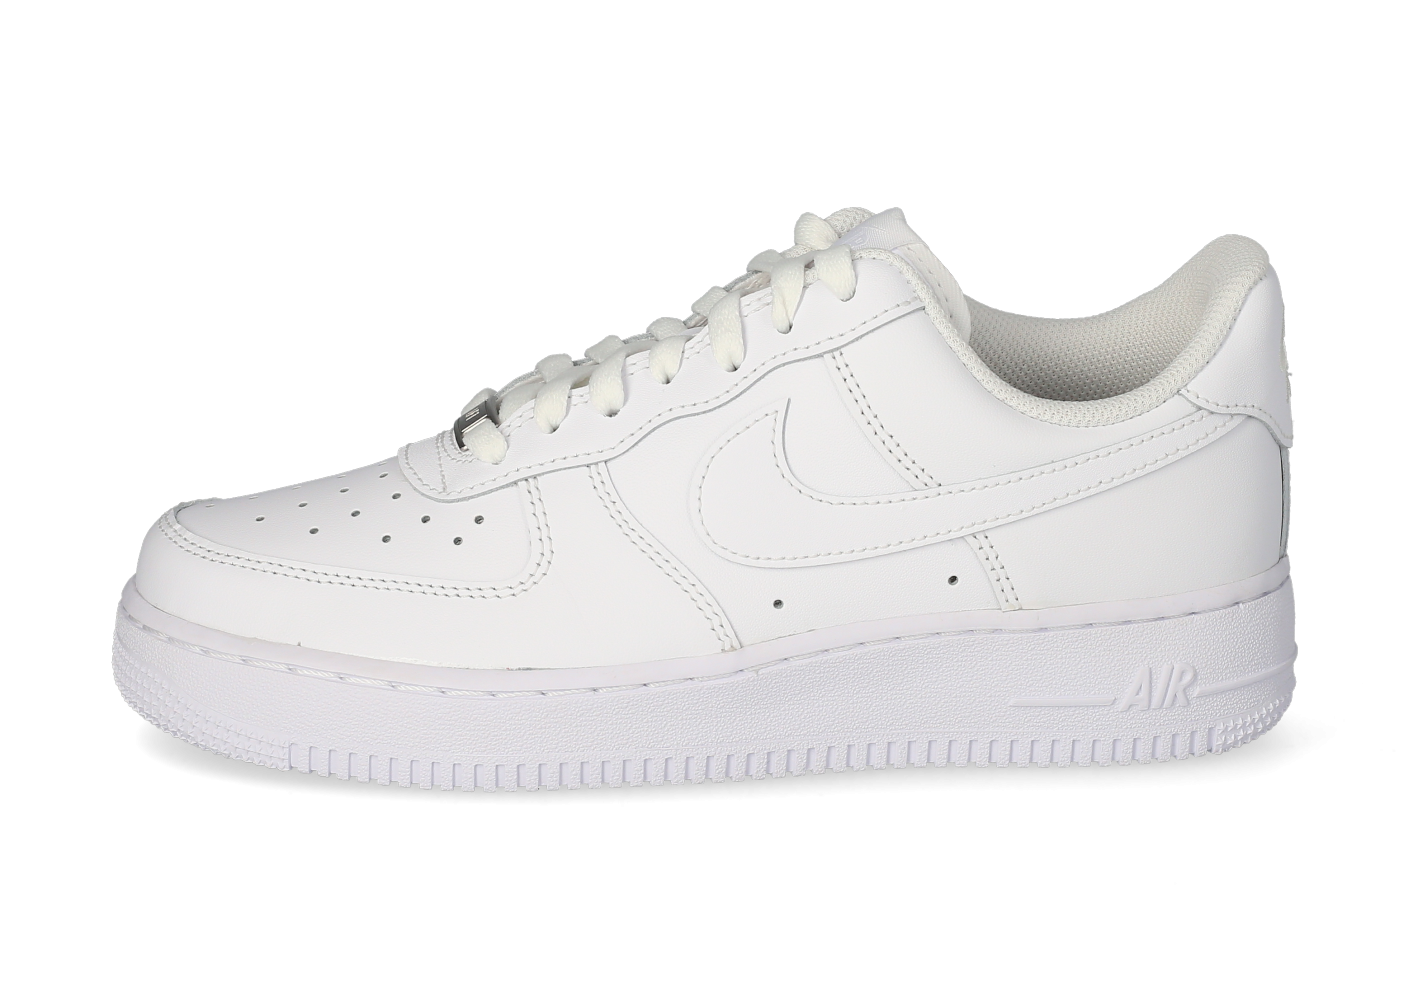 Nike Air Force 1 '07 blanche - Chaussures Baskets homme - Chausport